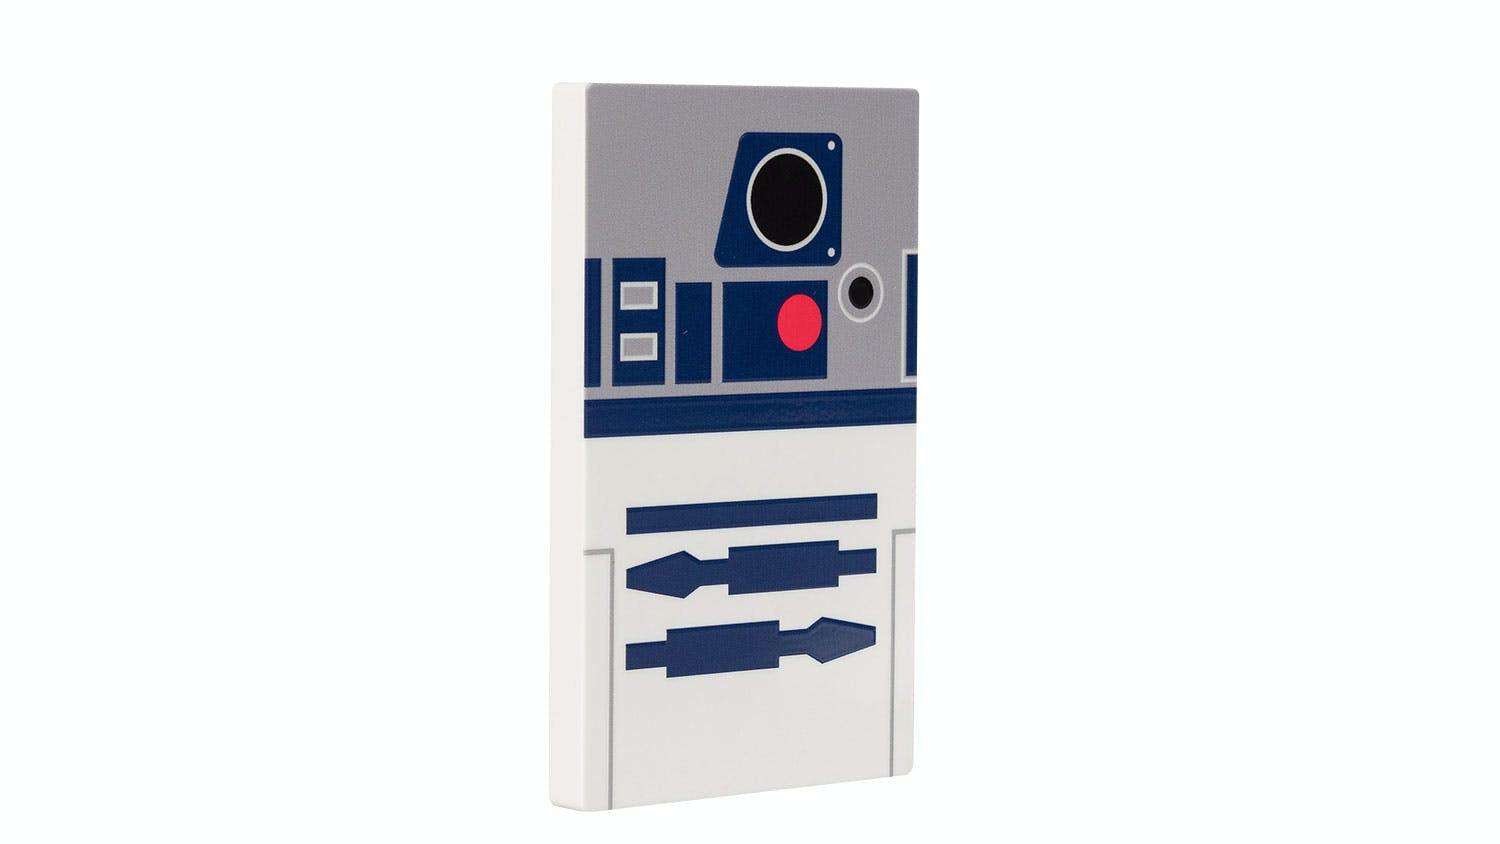 Cell phones amp accessories gt cell phone accessories gt chargers - Tribe Star Wars R2 D2 4000mah Power Bank